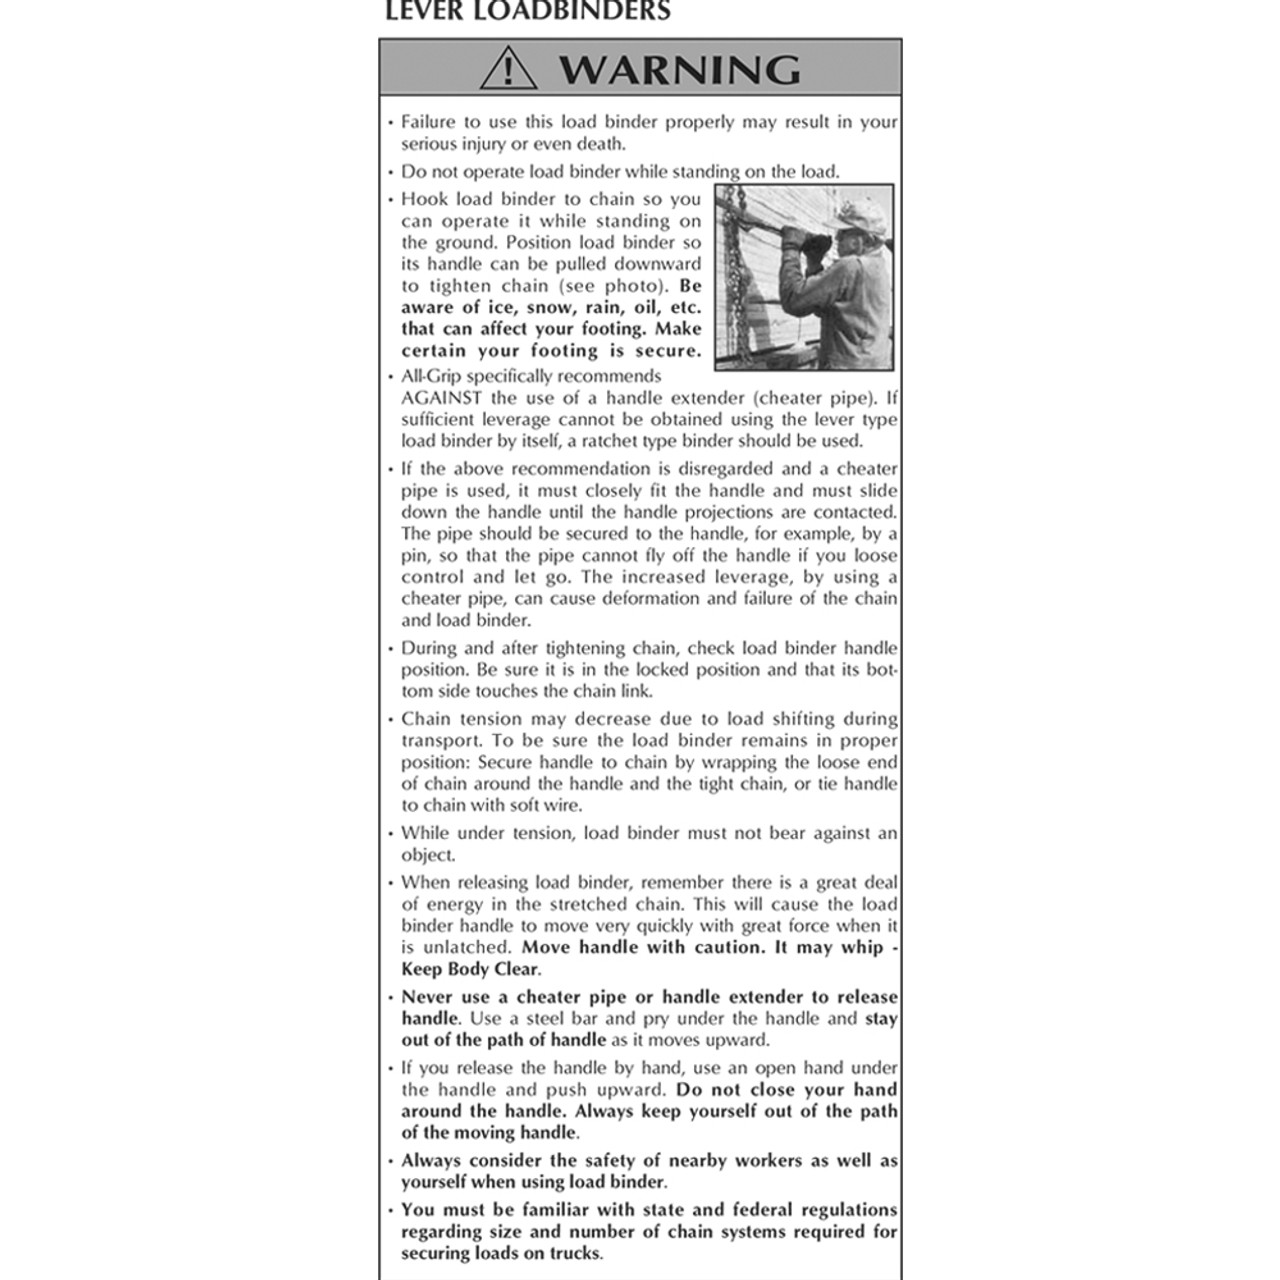 Lever Loadbinder Warnings